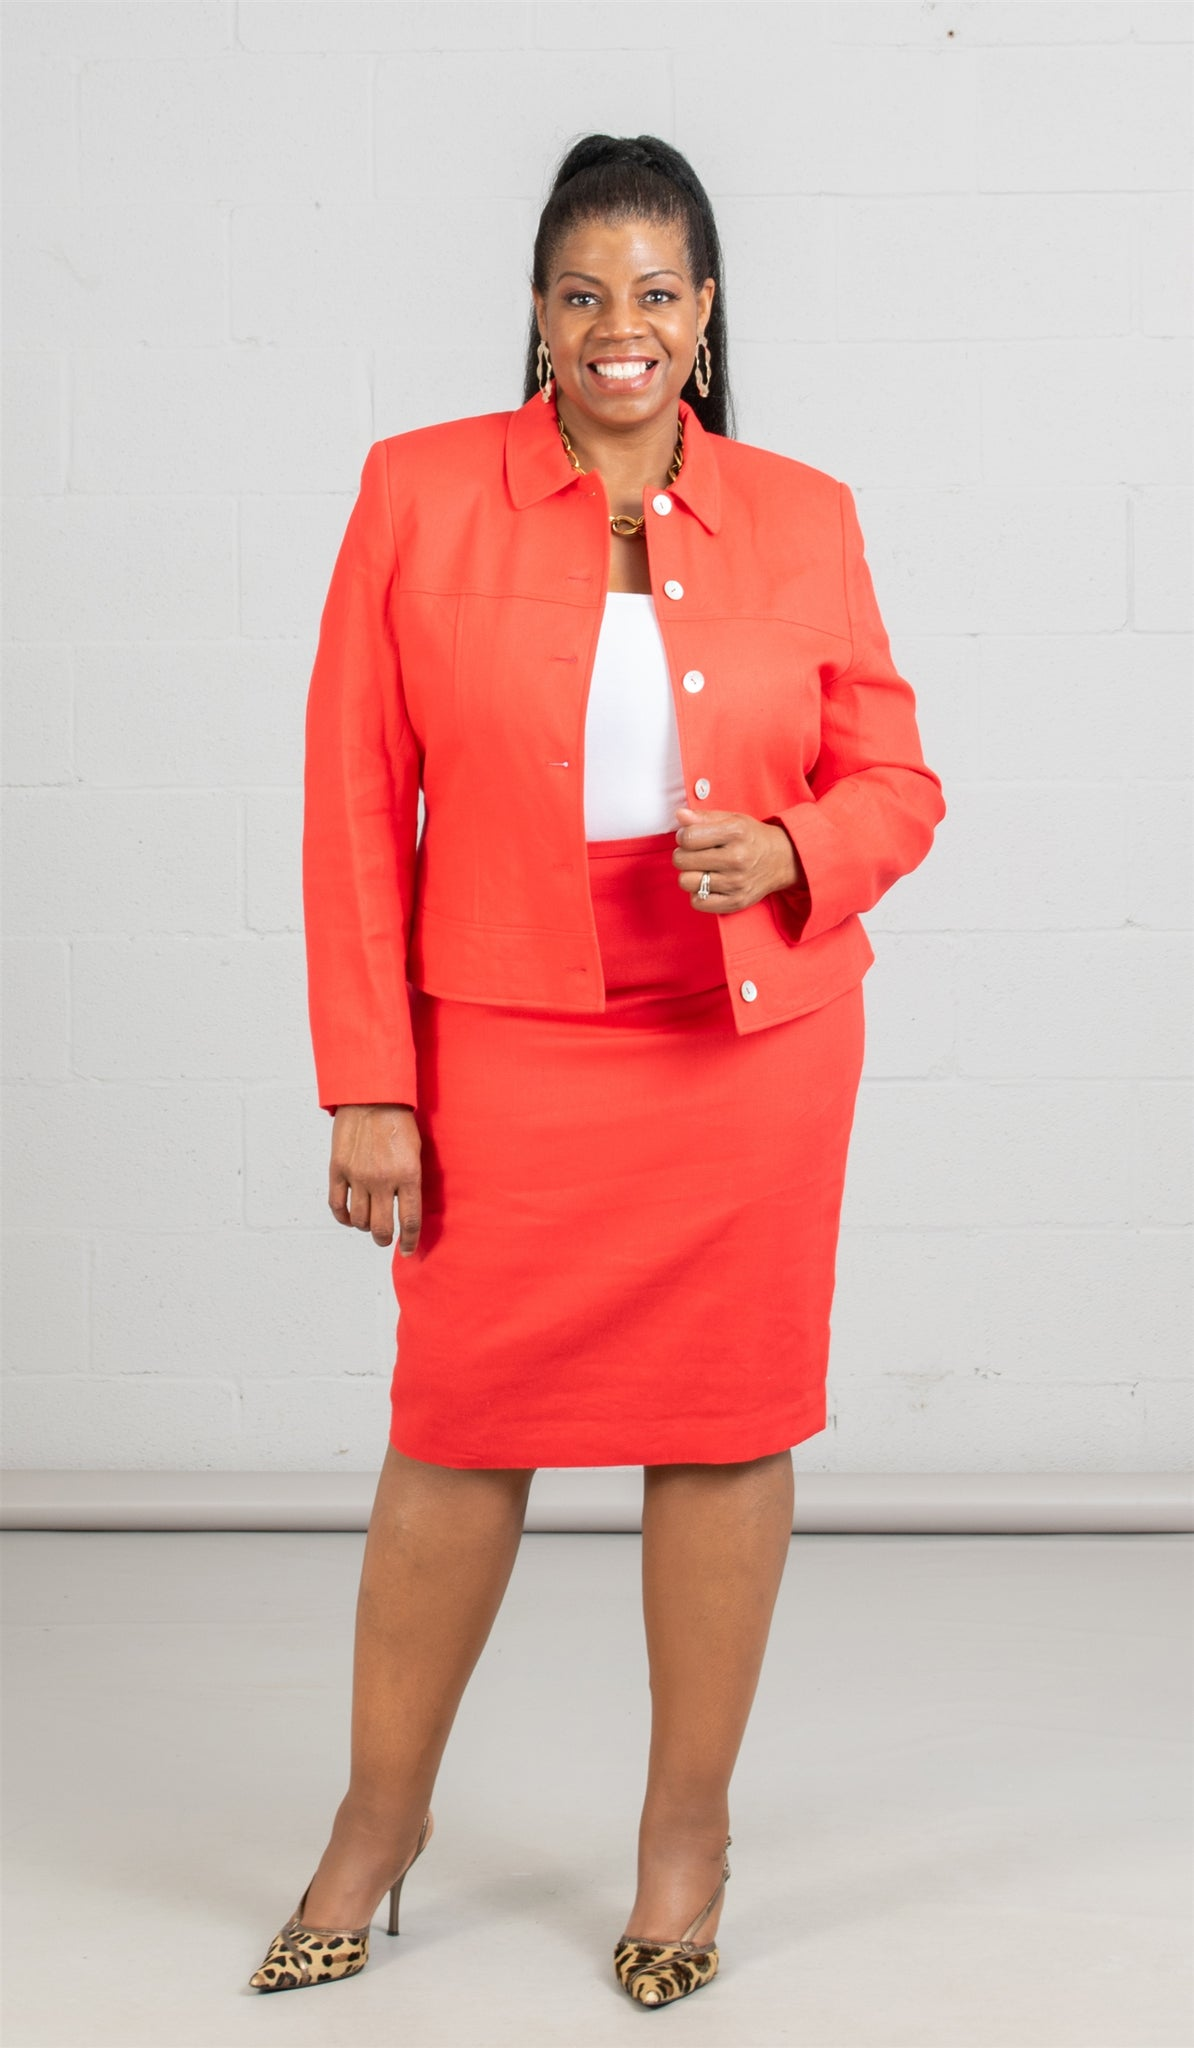 Women Business Skirt Suit 90351-Red - Church Suits For Less